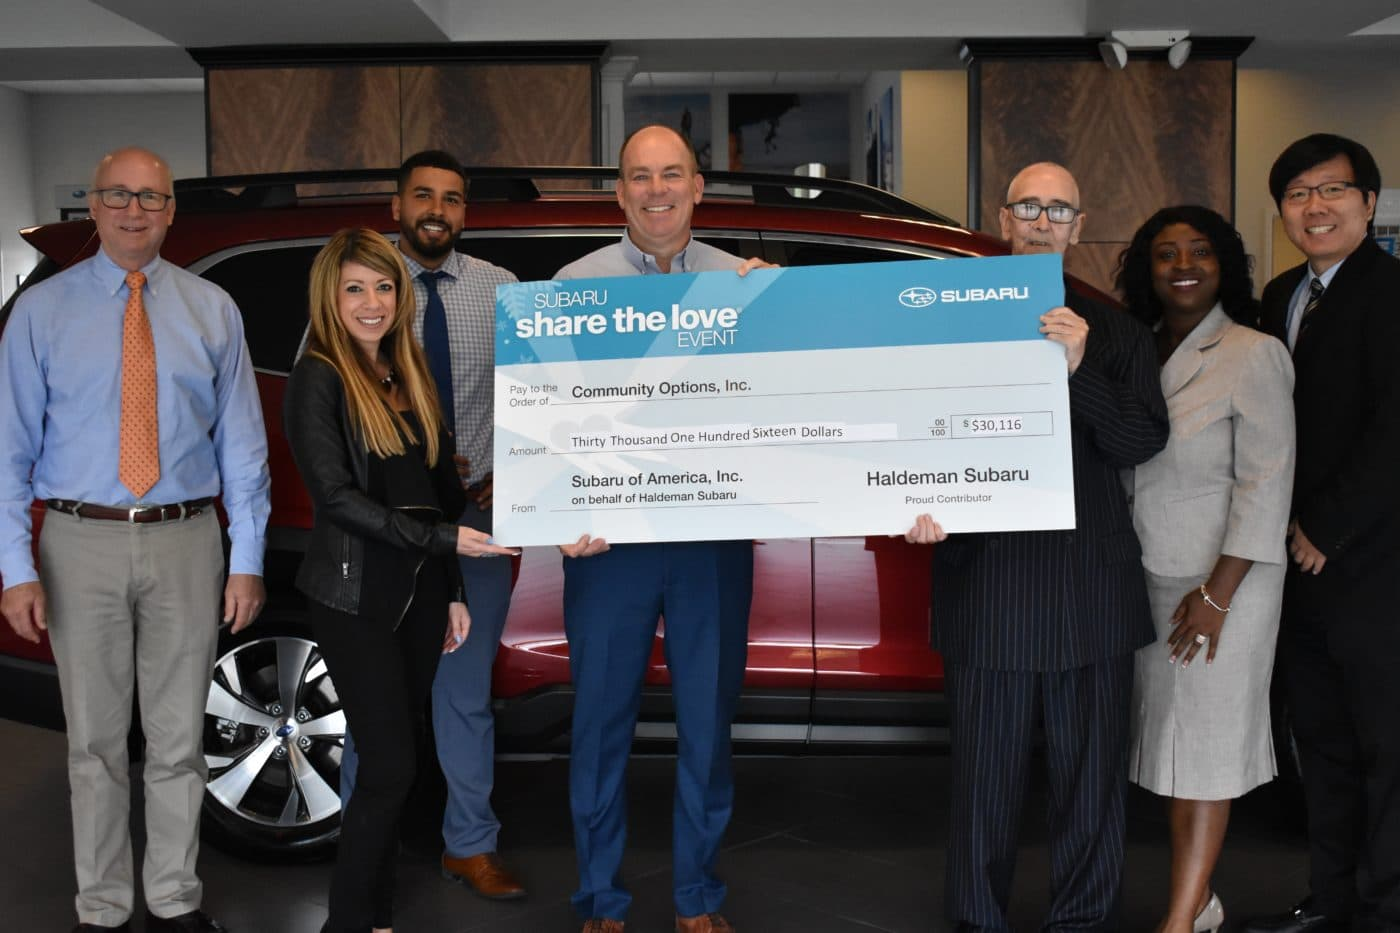 From left to right: Greg Hritz, Mike Manna, Kim Schleyer, Scott Haldeman, Joseph Everett, Ida Bormentar, and Andrew Park as they are presented a check from Haldeman Subaru representatives of Community Options, Inc. on May 23.